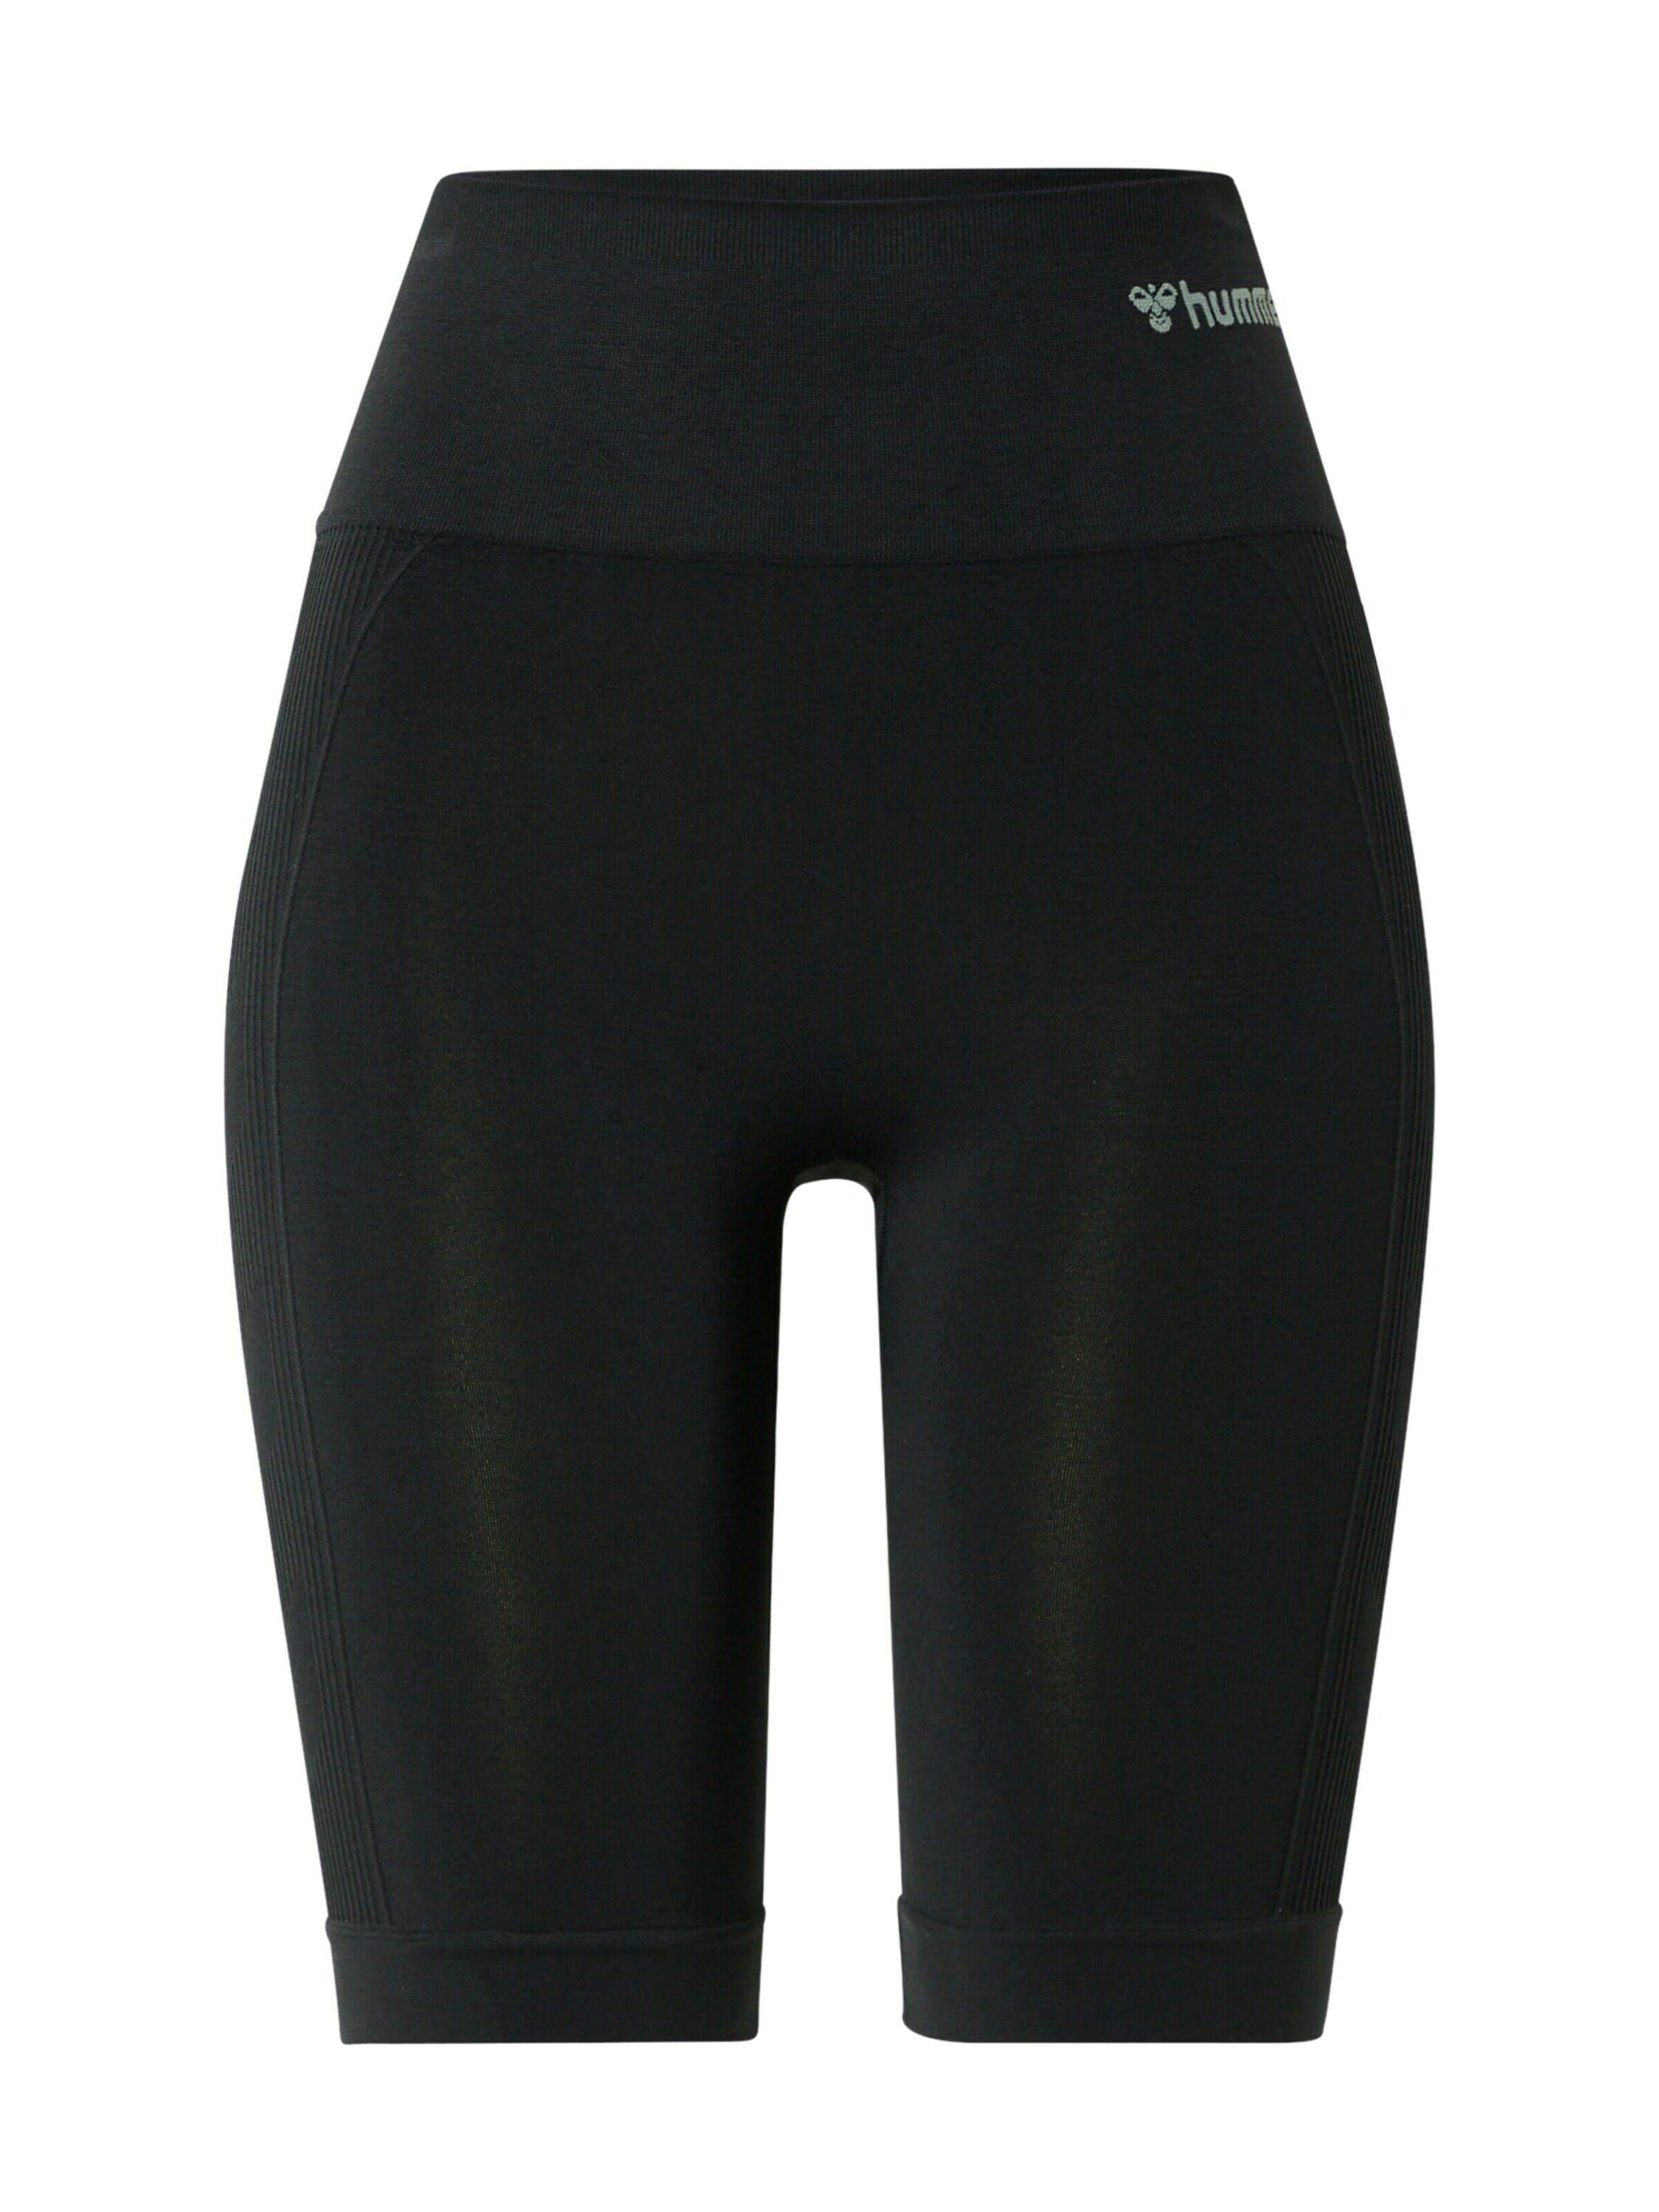 HML SEAMLESS CYLING SHORTS M